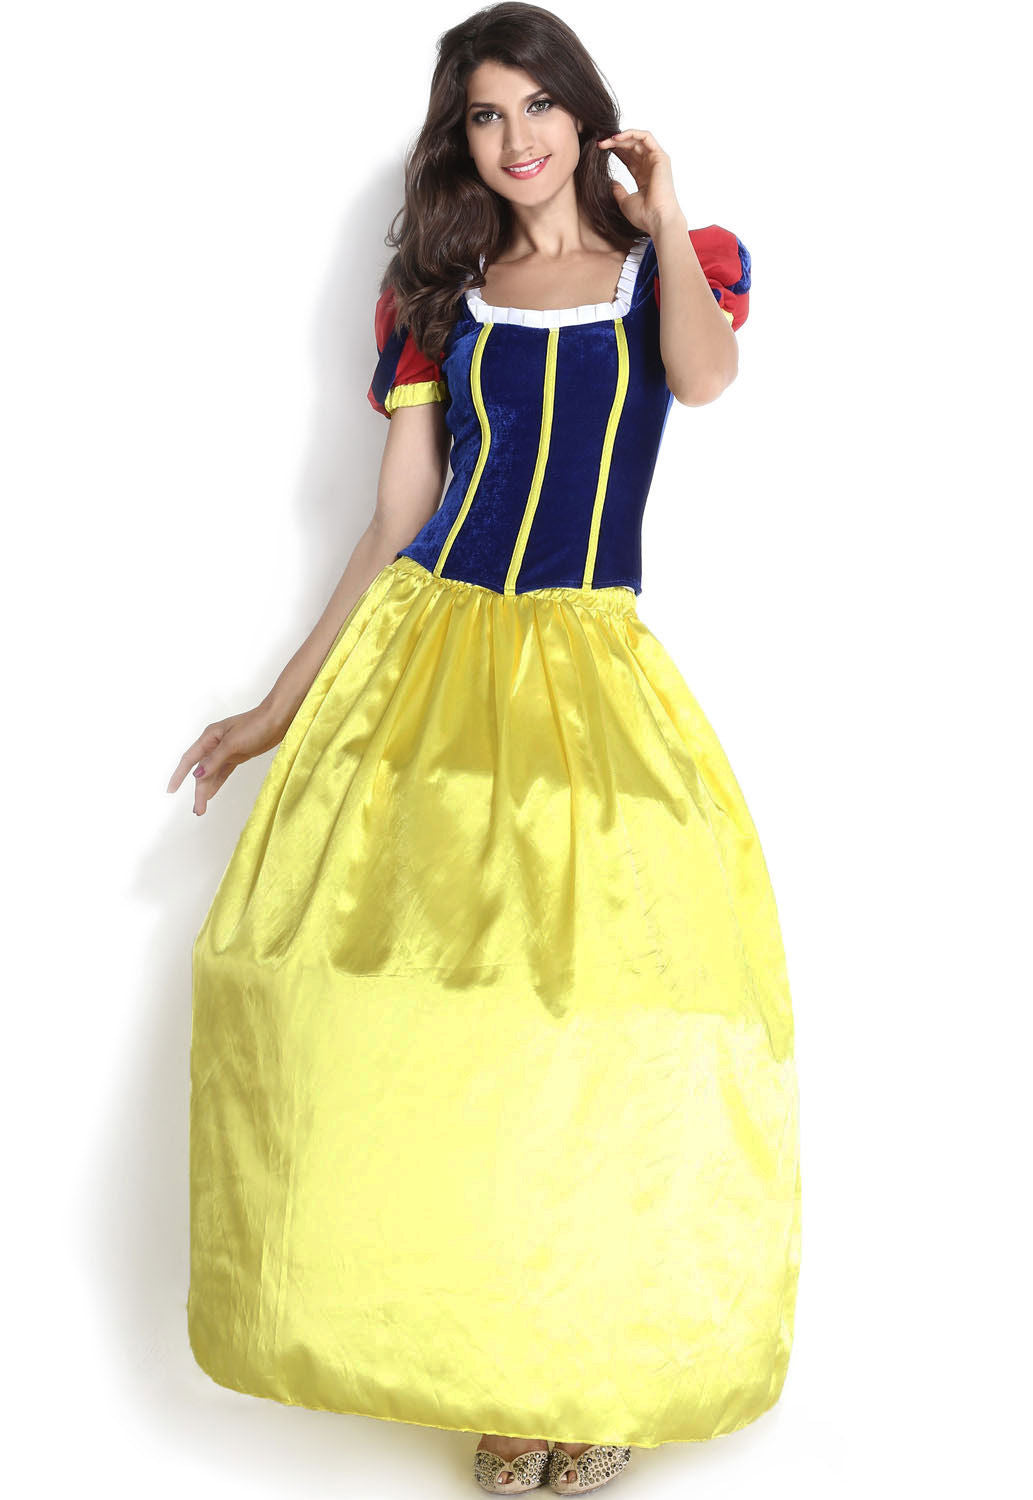 Snow White Princess Ball Gown Dress 3 Piece Halloween Costume Large ...